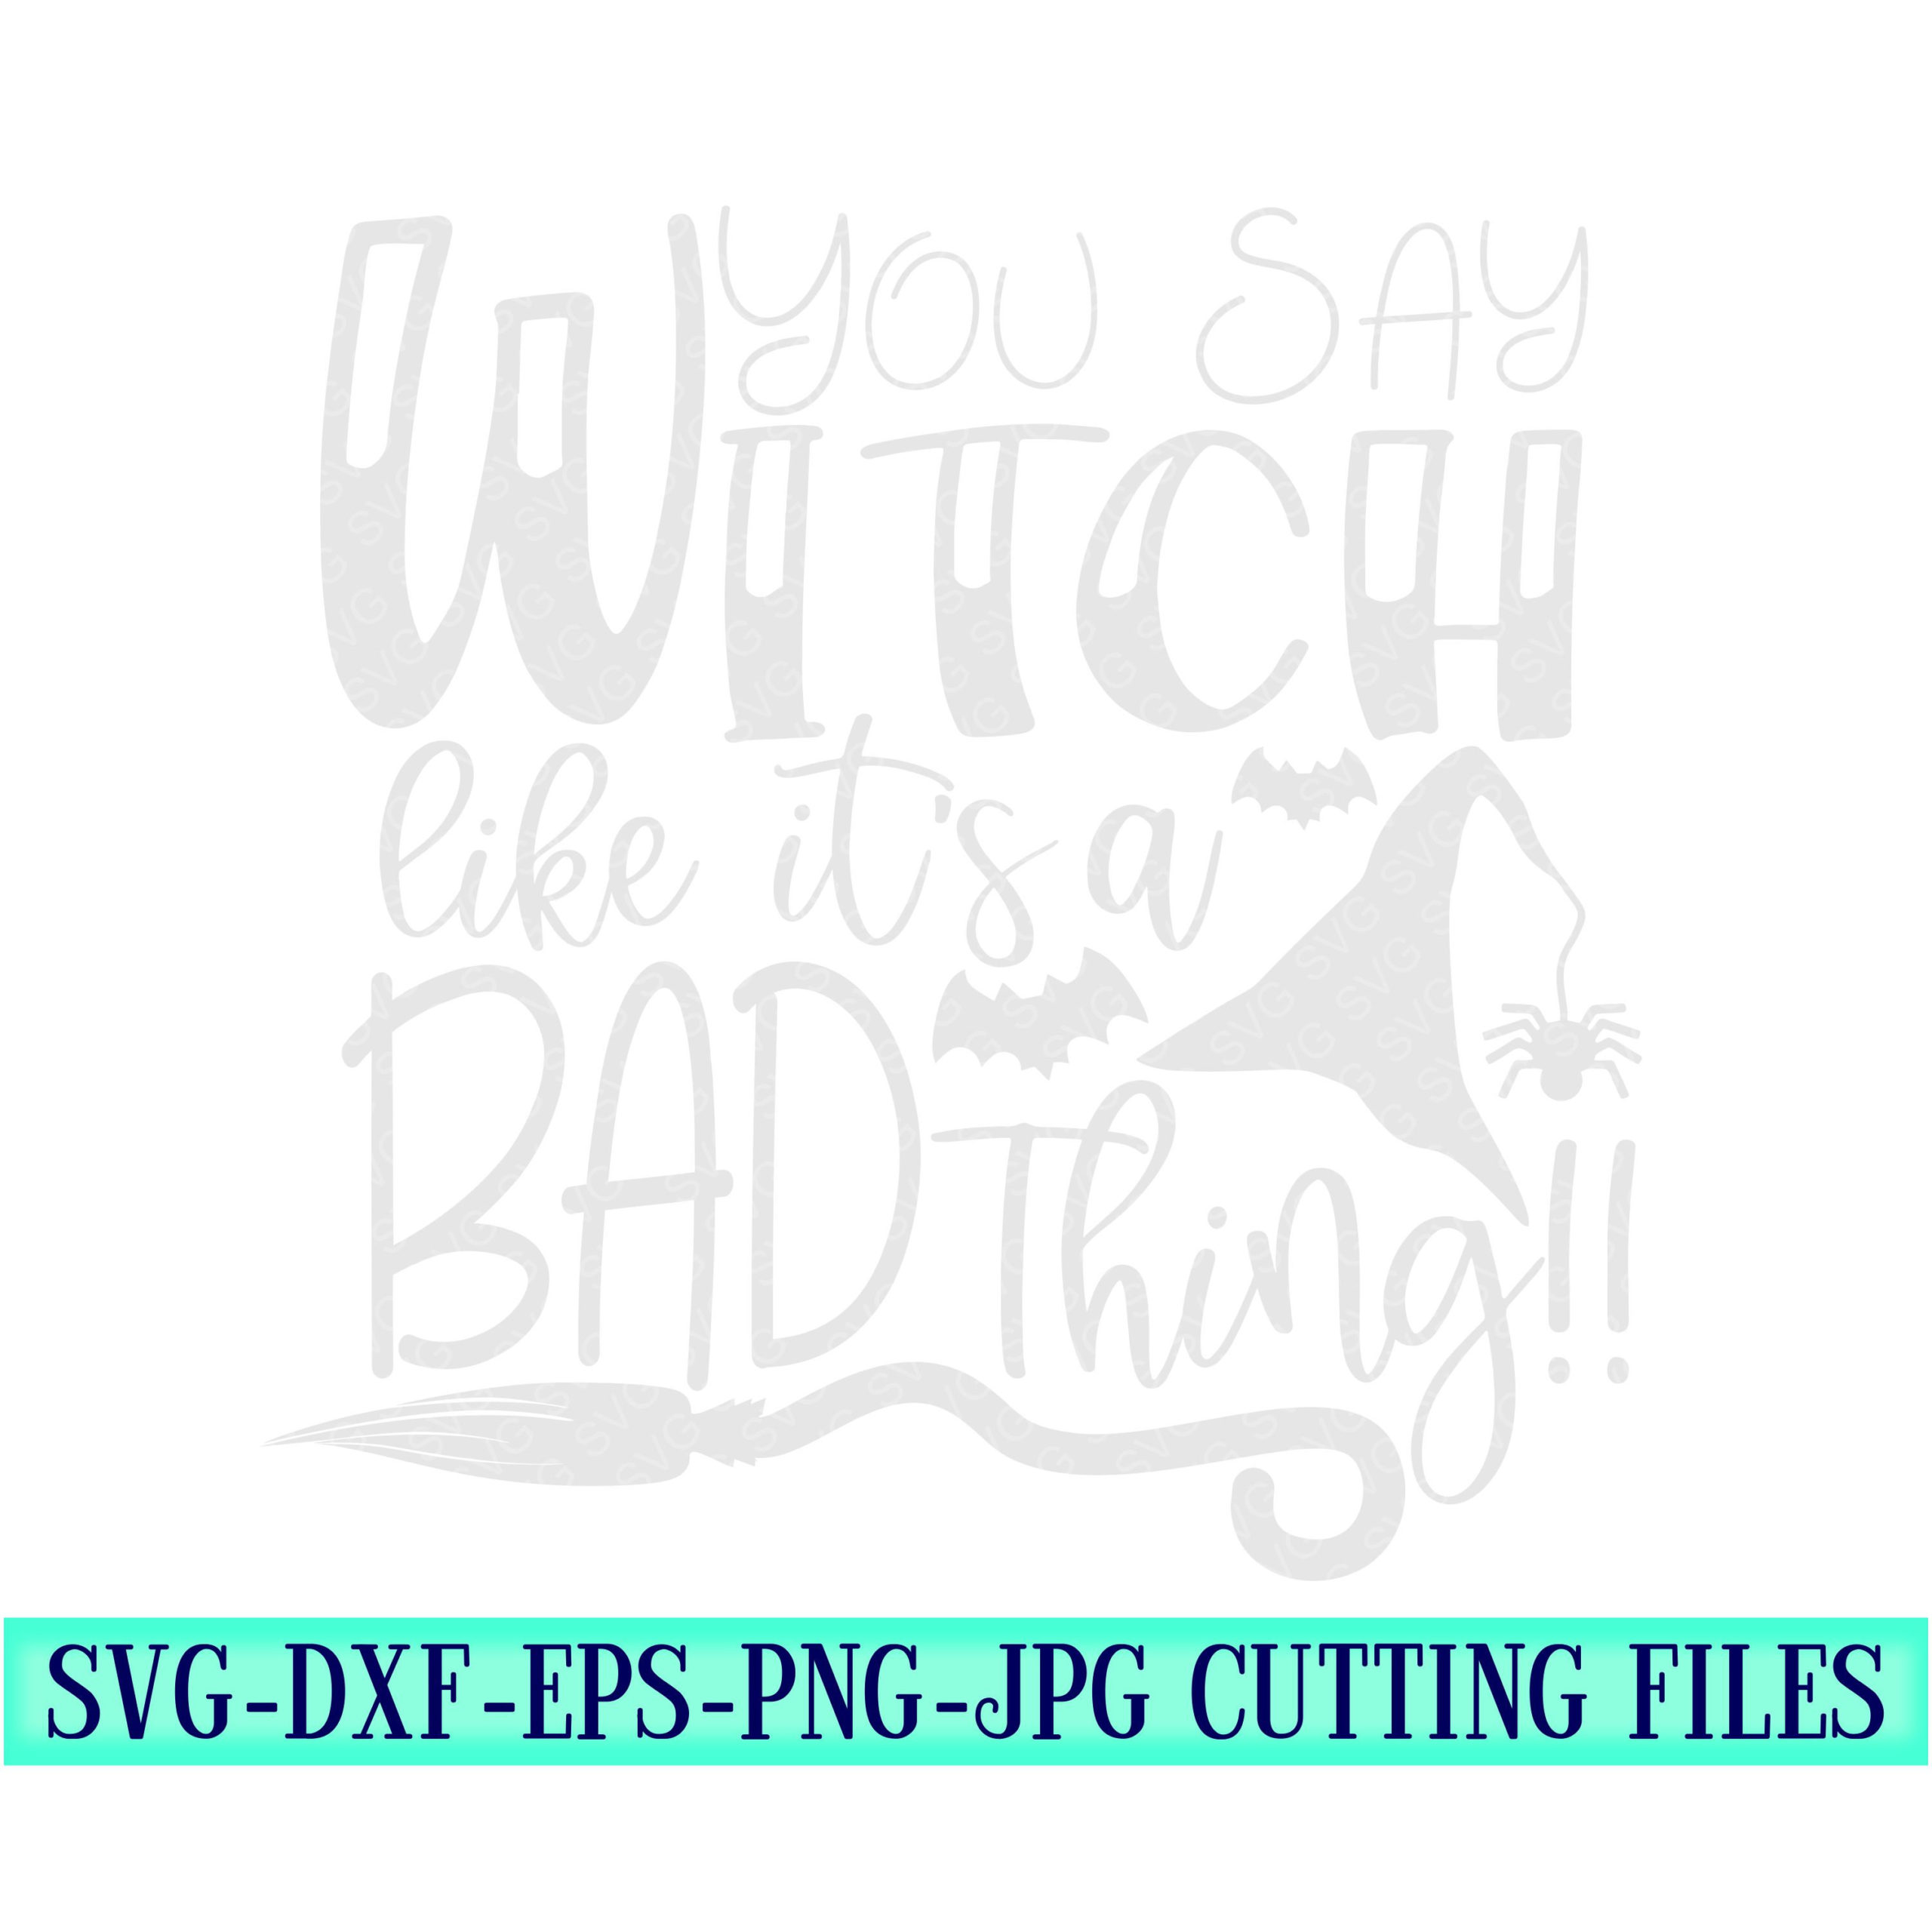 Yall-say-witch-like-its-a-bad-thing-svg-halloween-saying-svg-halloween-svg-designs-halloween-cut-files-cricut-cut-files-svg-for-cricut-5f6f7bf2